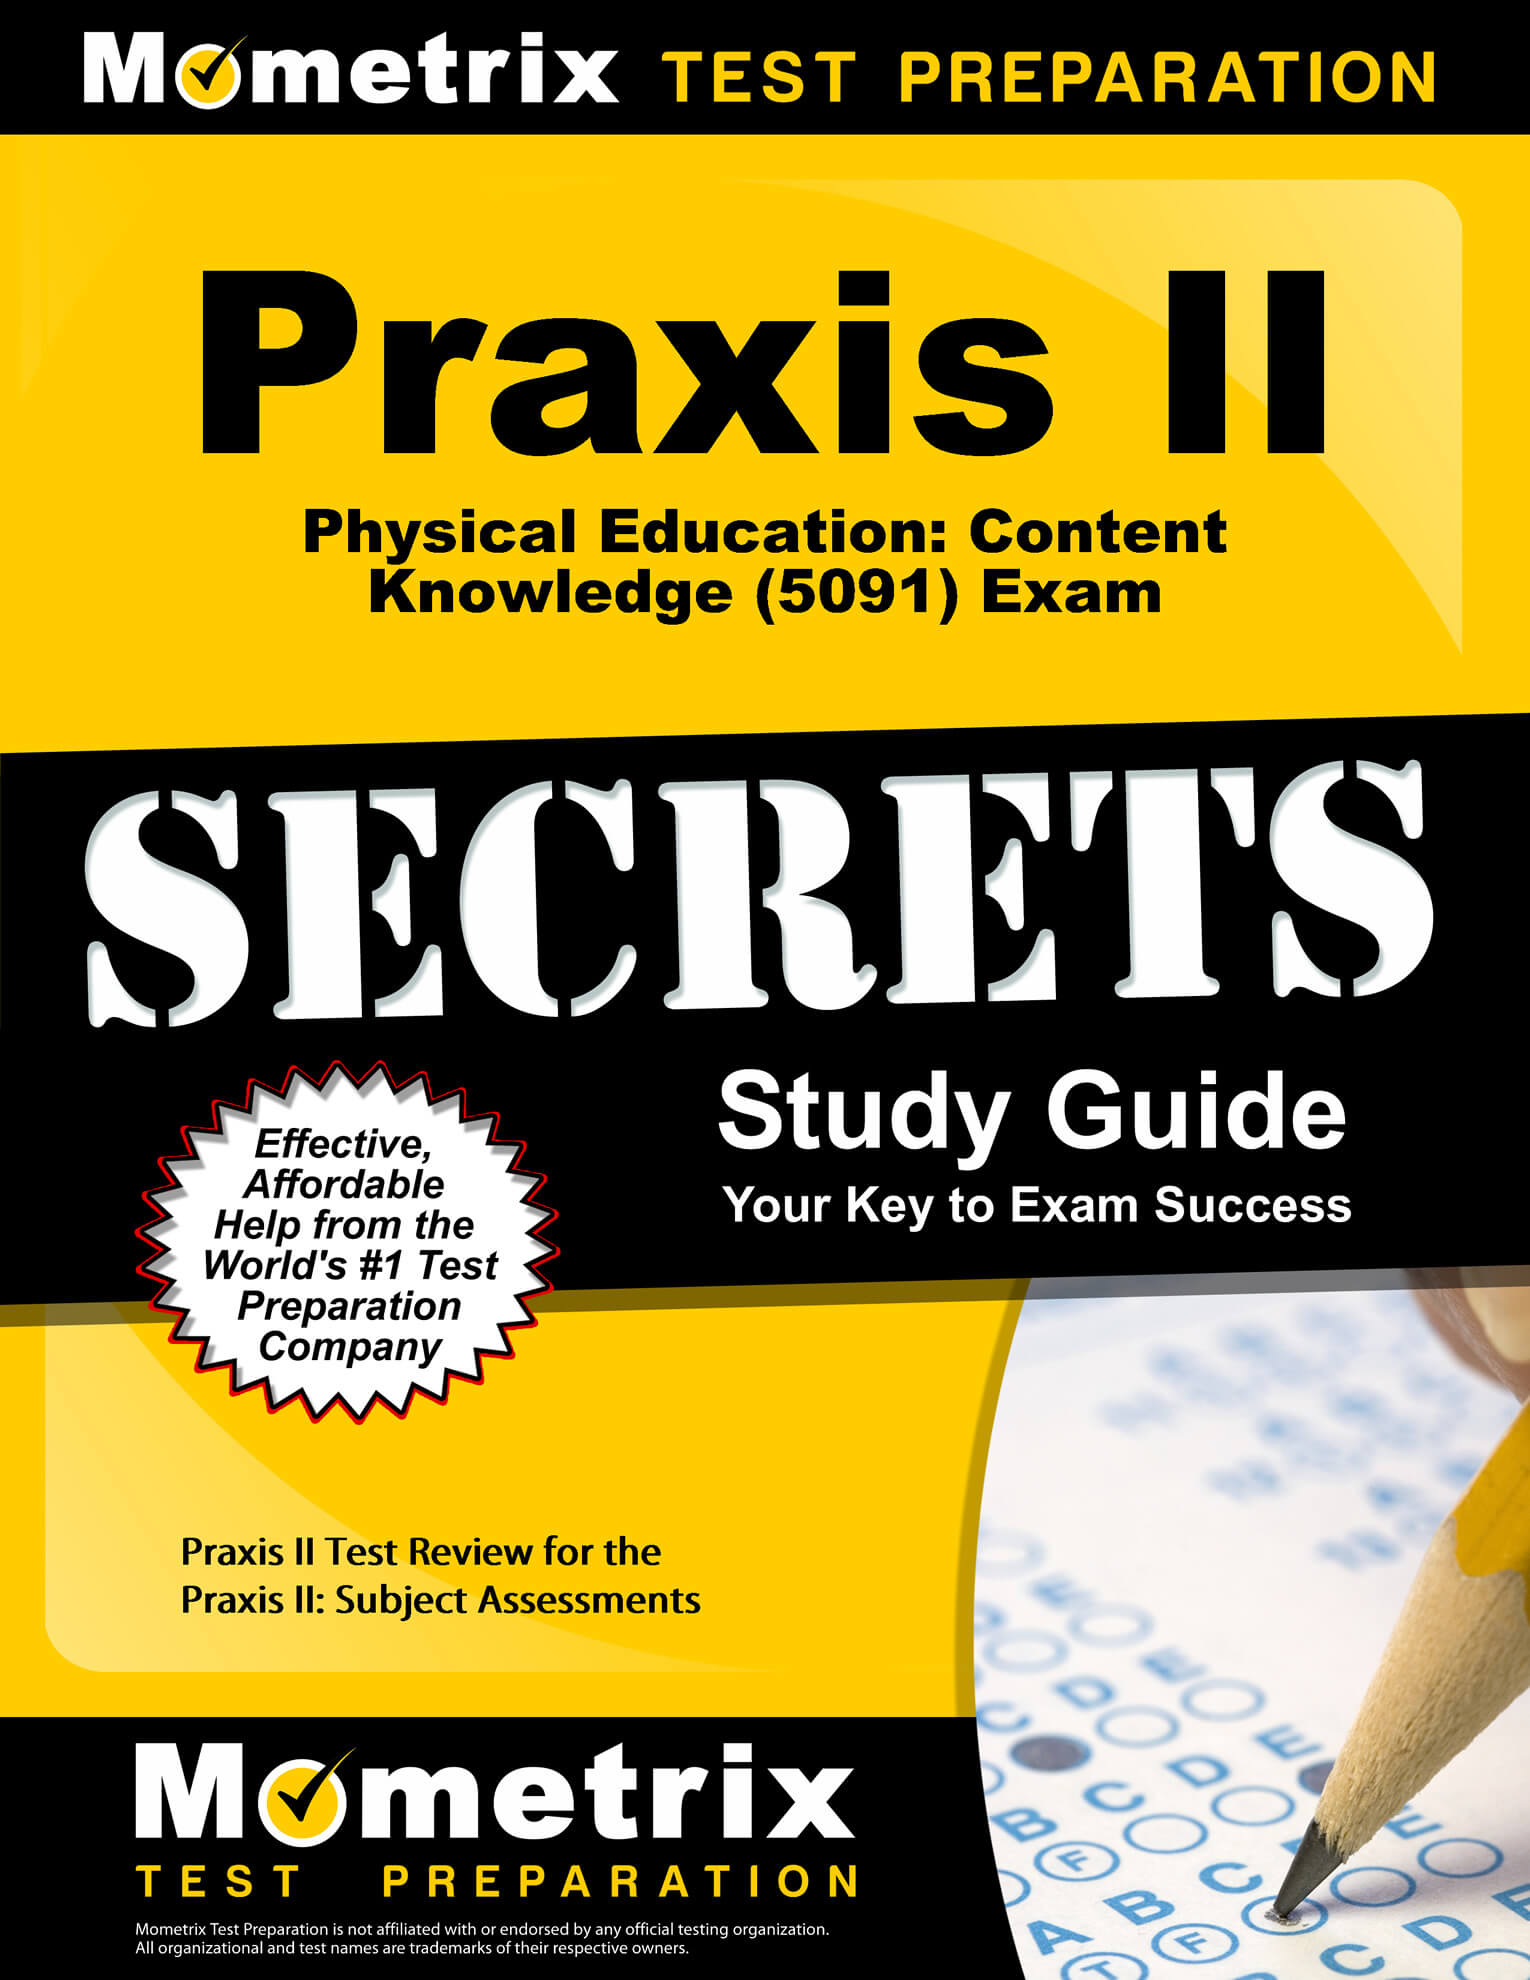 Praxis II Physical Education: Content Knowledge Study Guide